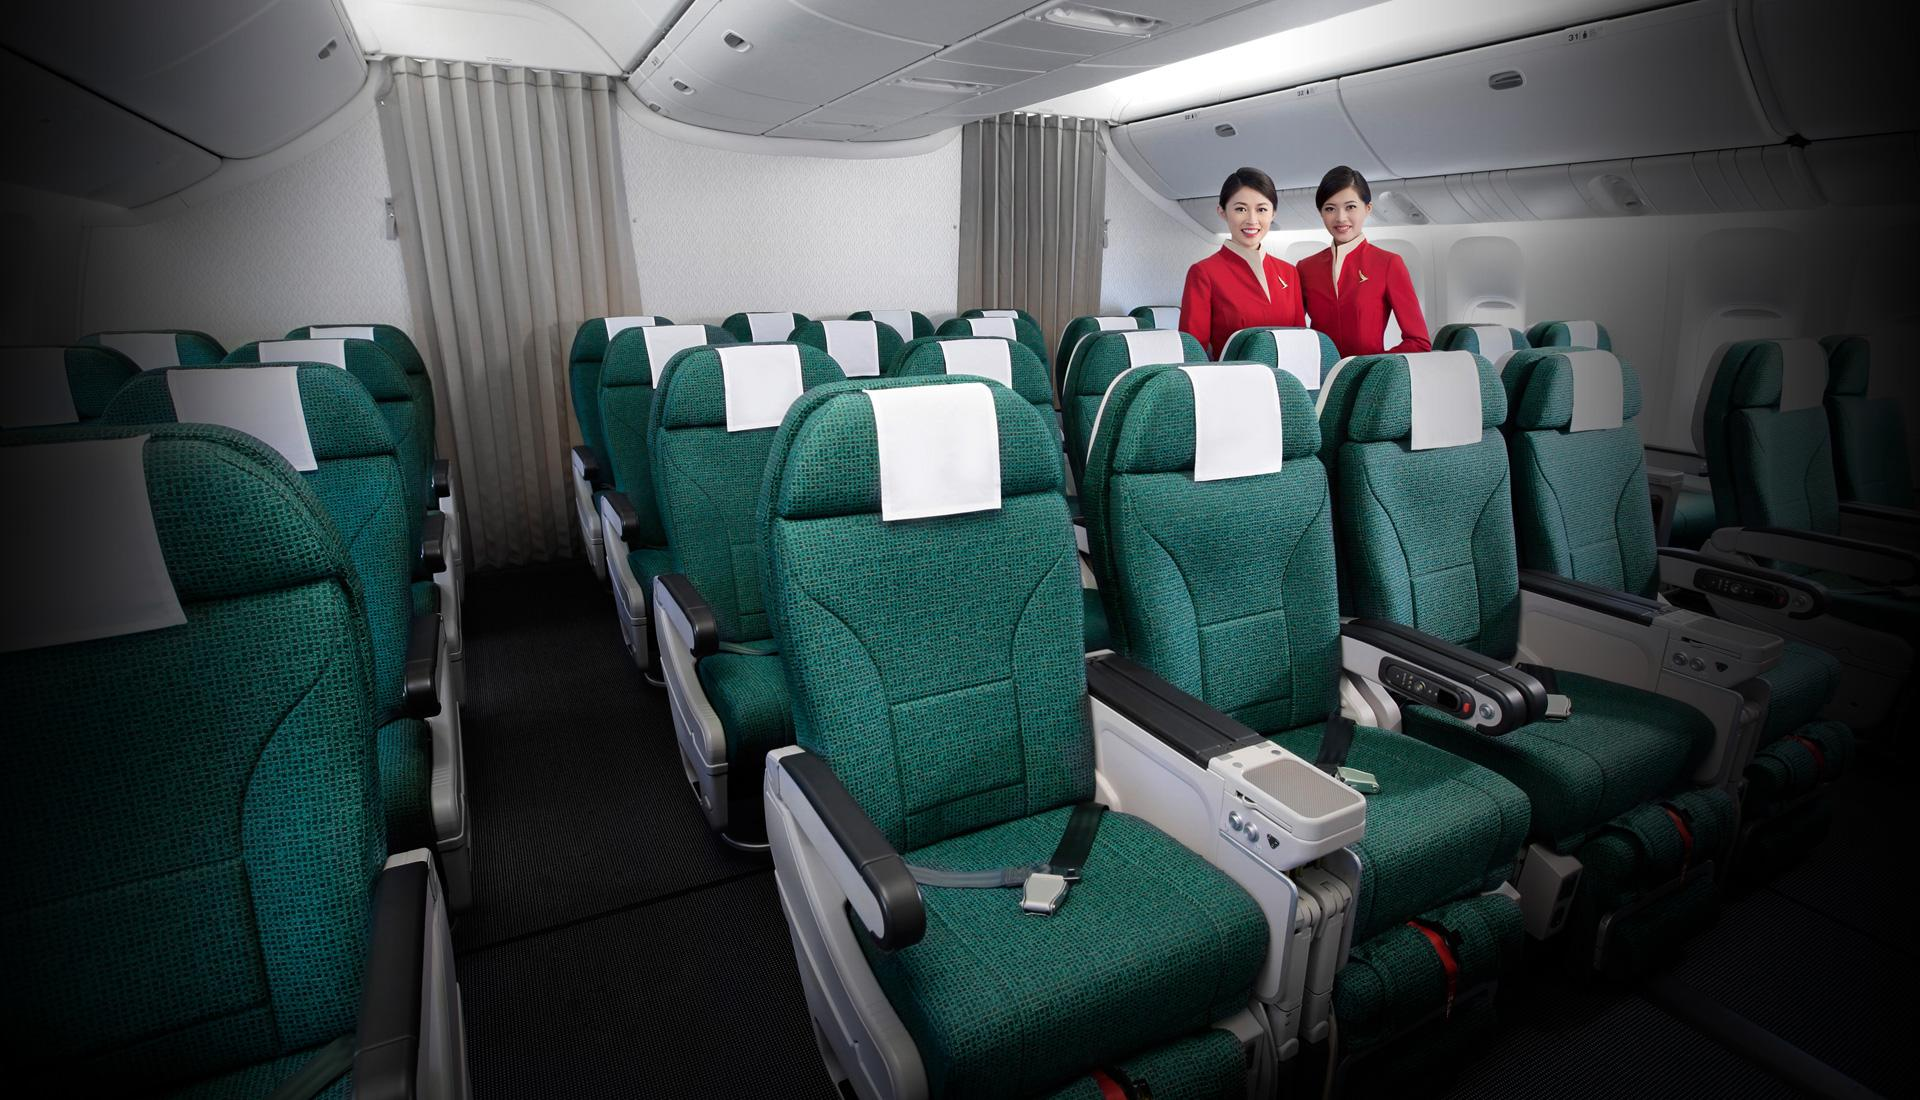 These Airlines Offer Premium Economy Seats Worth Paying For